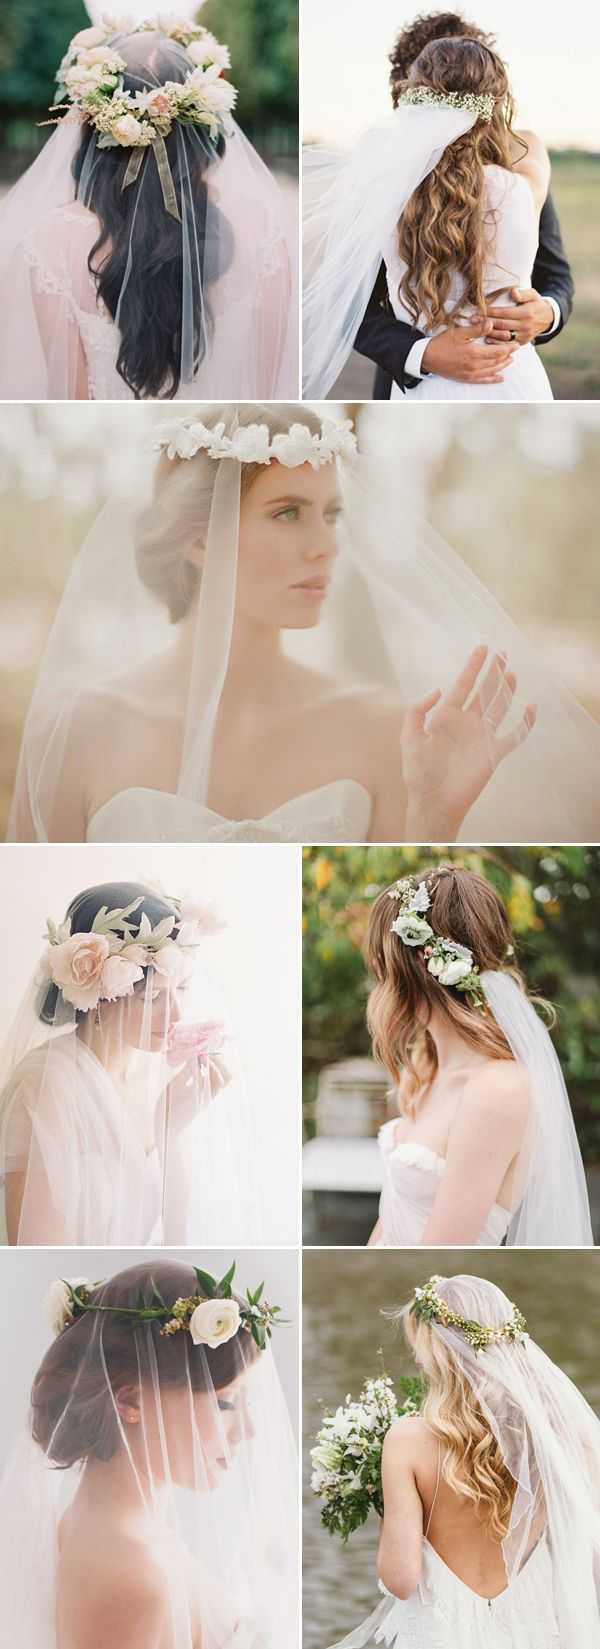 26 Bridal Hairstyles that Look Good with Veils! - Flower crown!